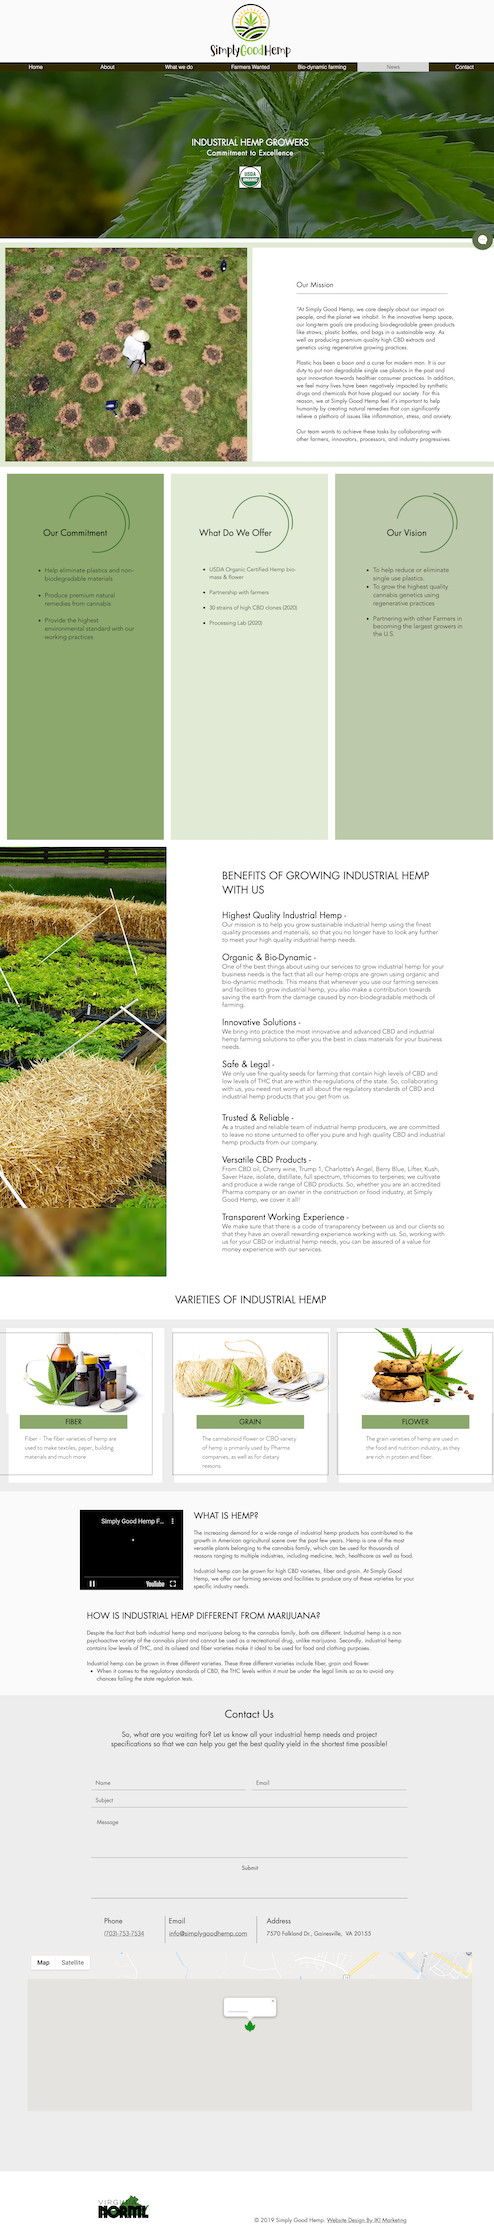 New Website Design for Simply Good Hemp